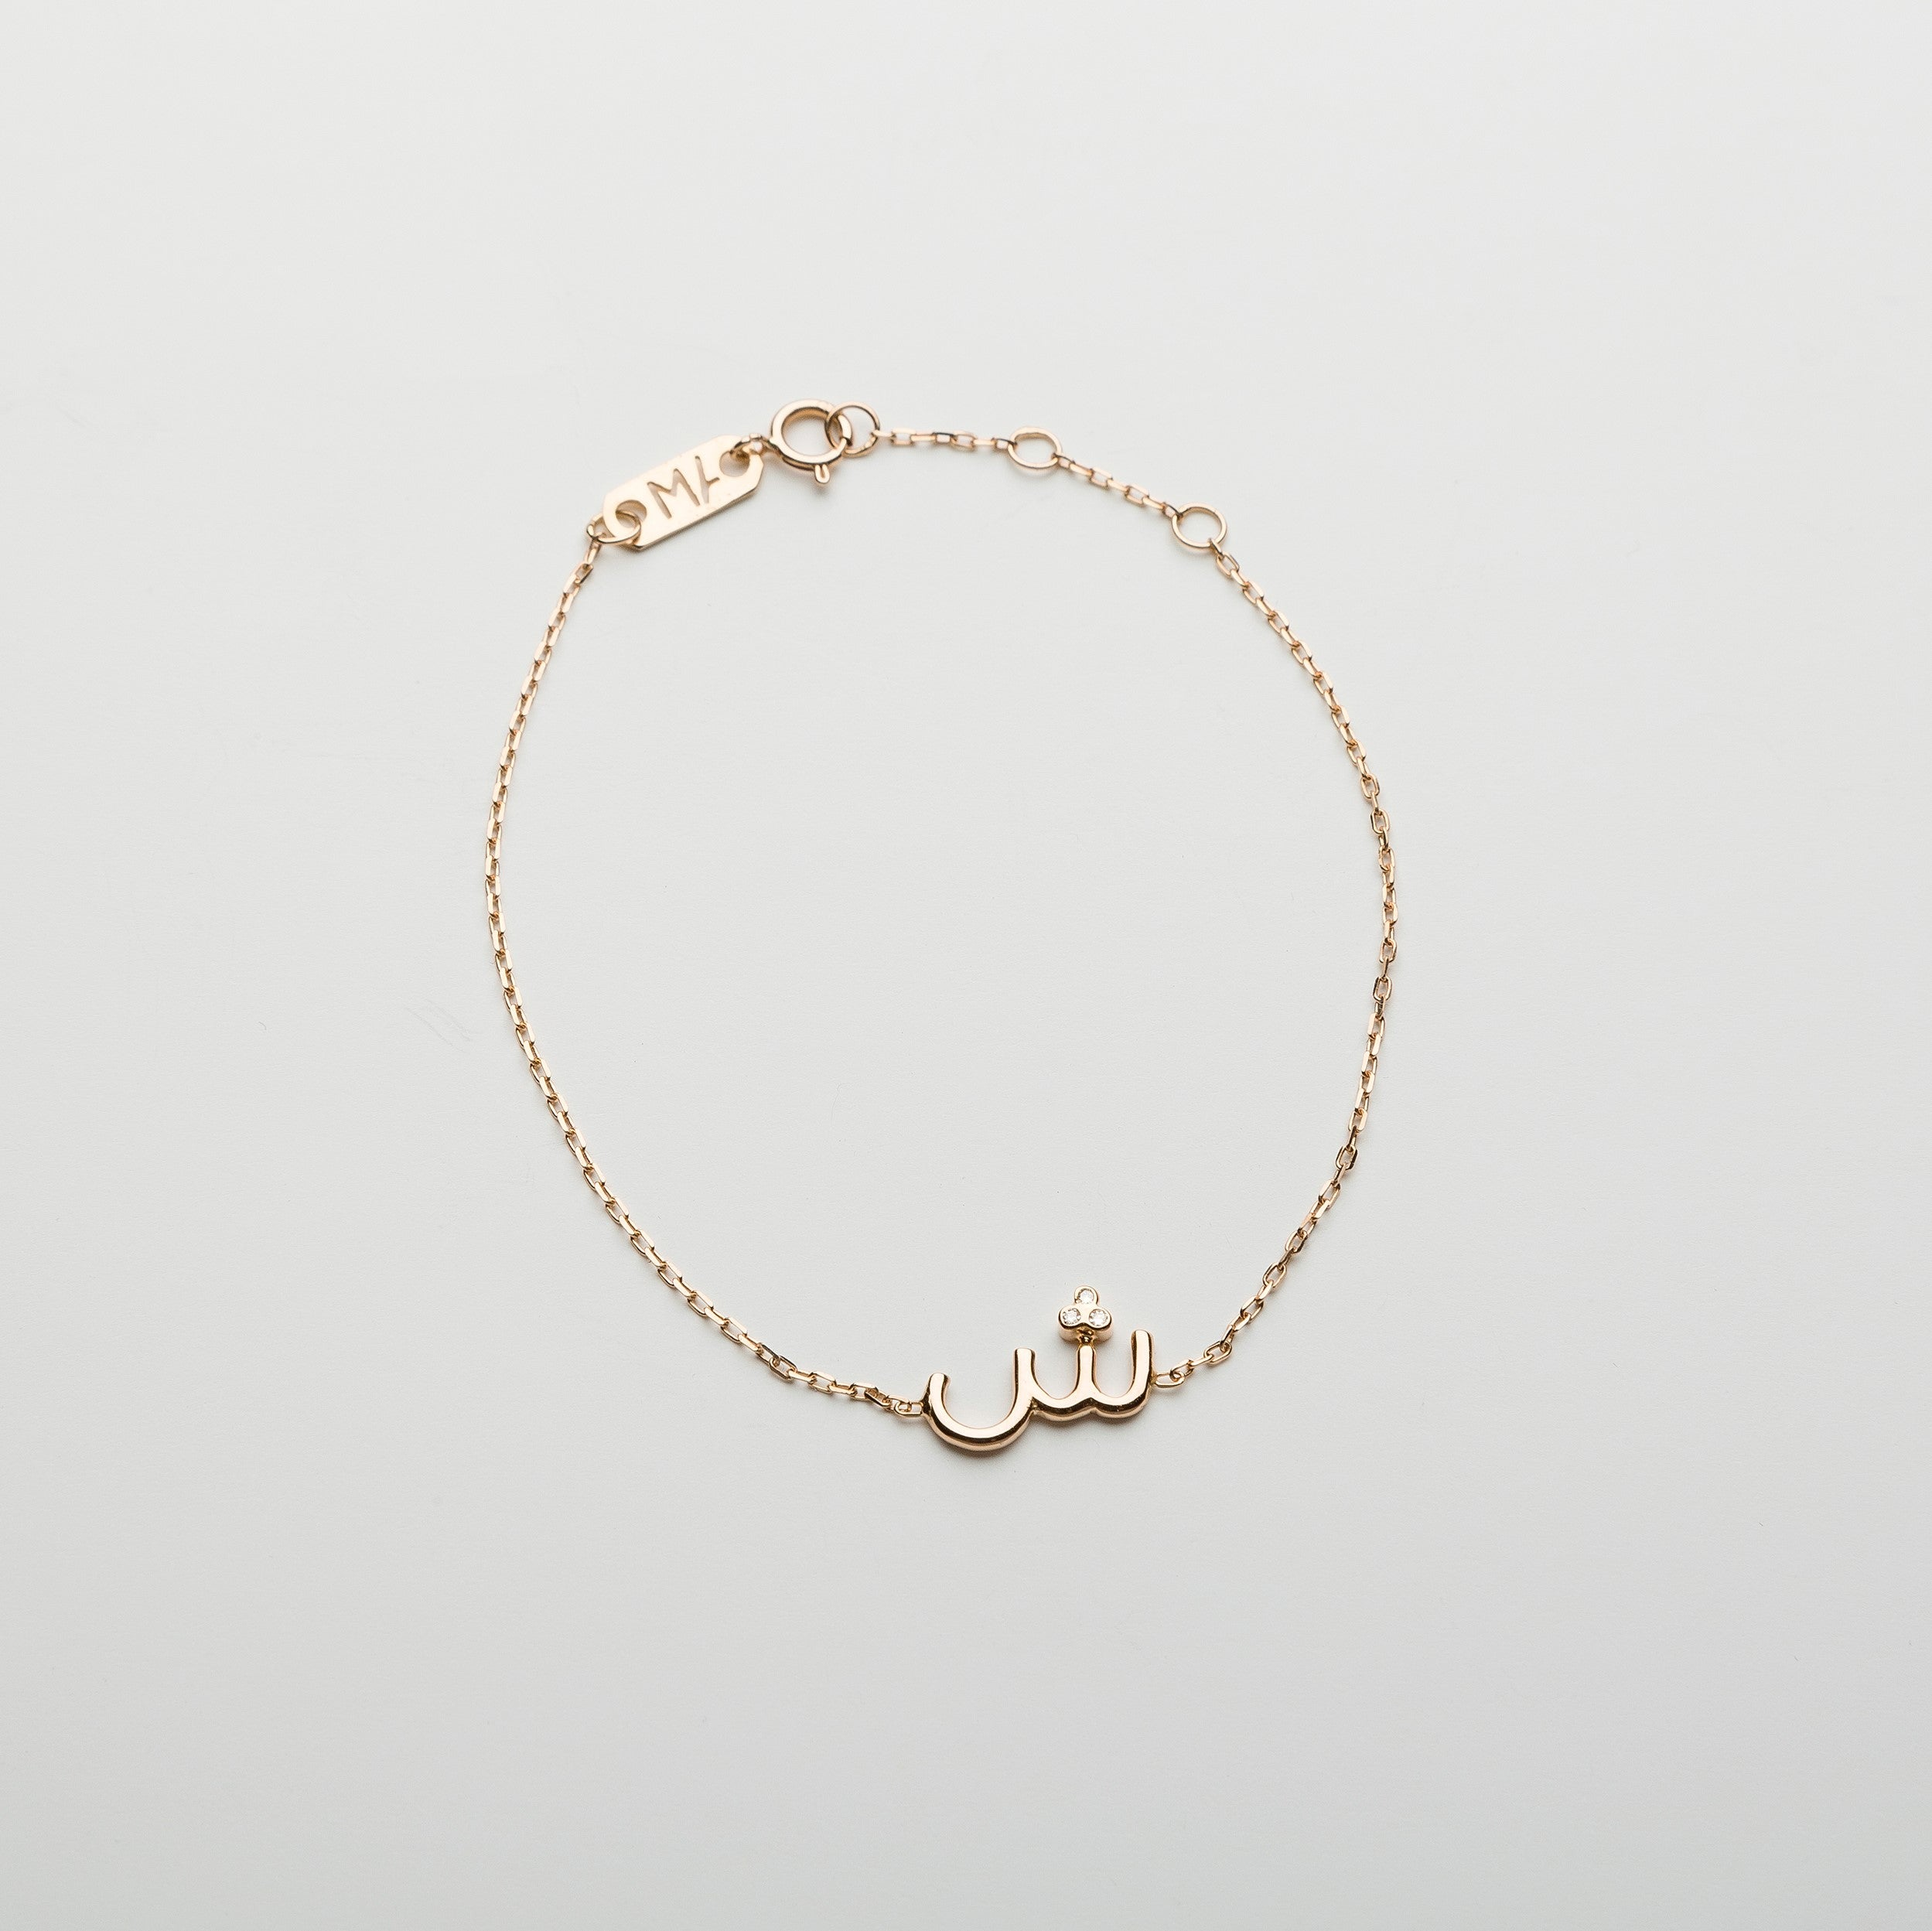 Single Letter Bracelet with Diamond on the Dot